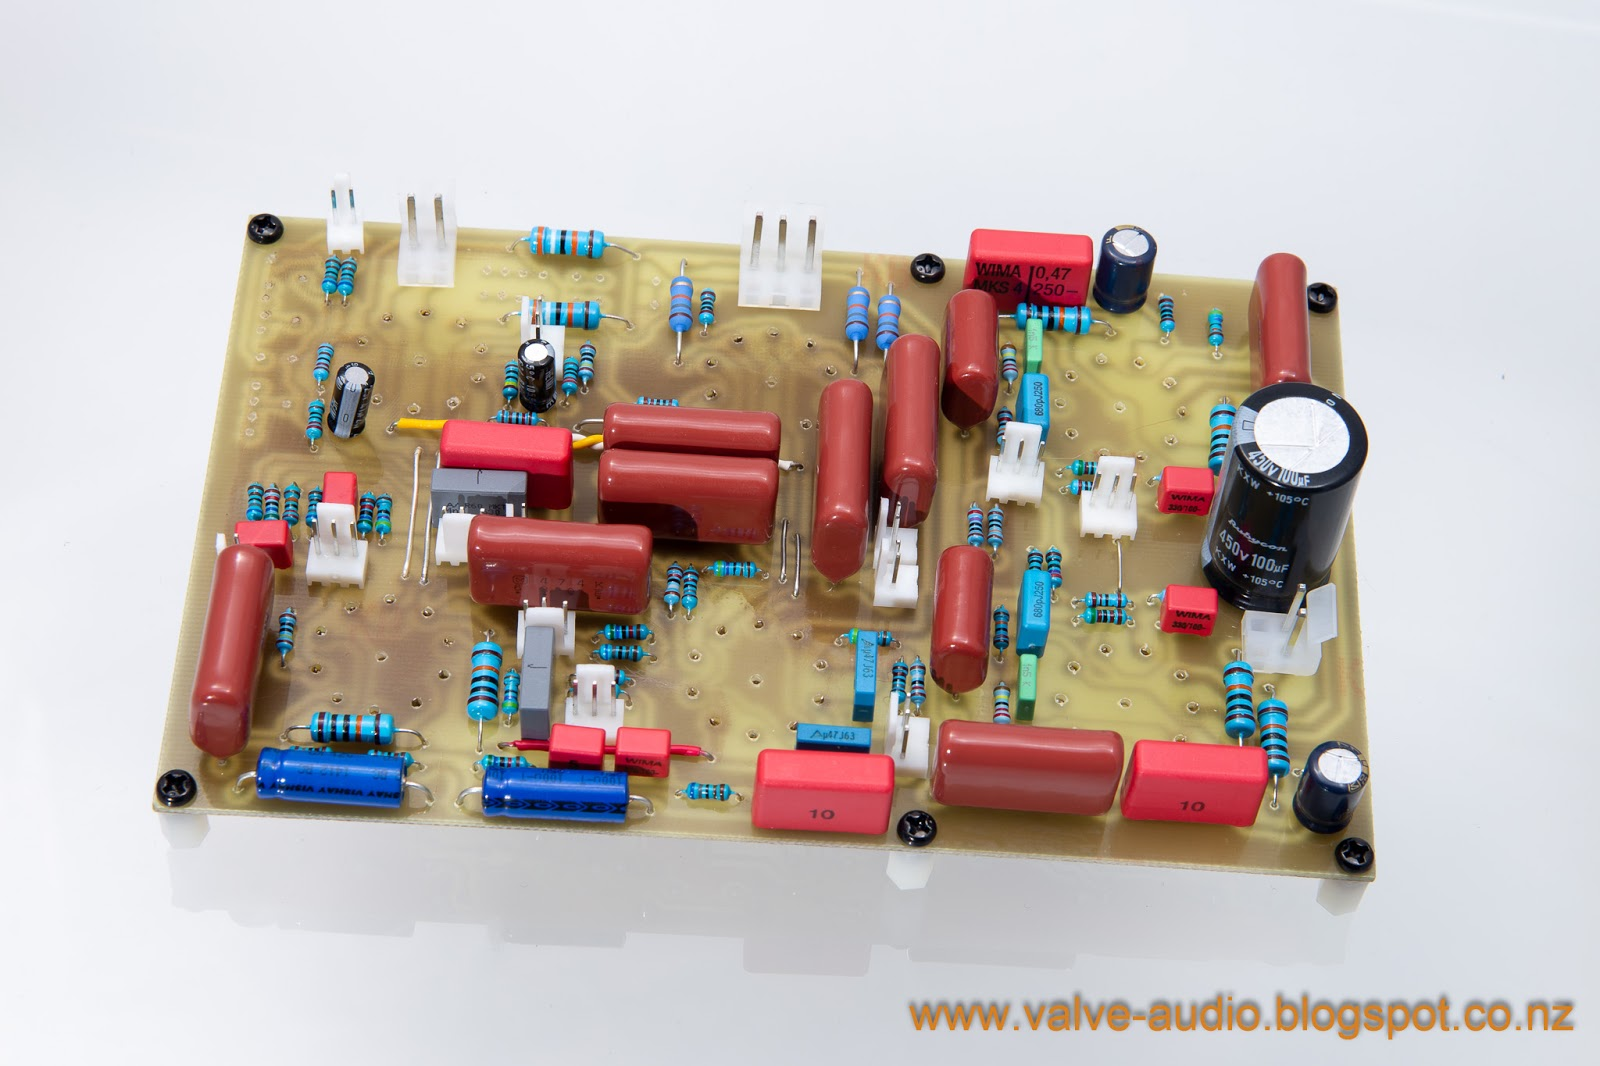 Vinyl And Valves Tubes Turntables El84 Push Pull Tube Amplifier Schematic Design Concepts The Amp Main Board